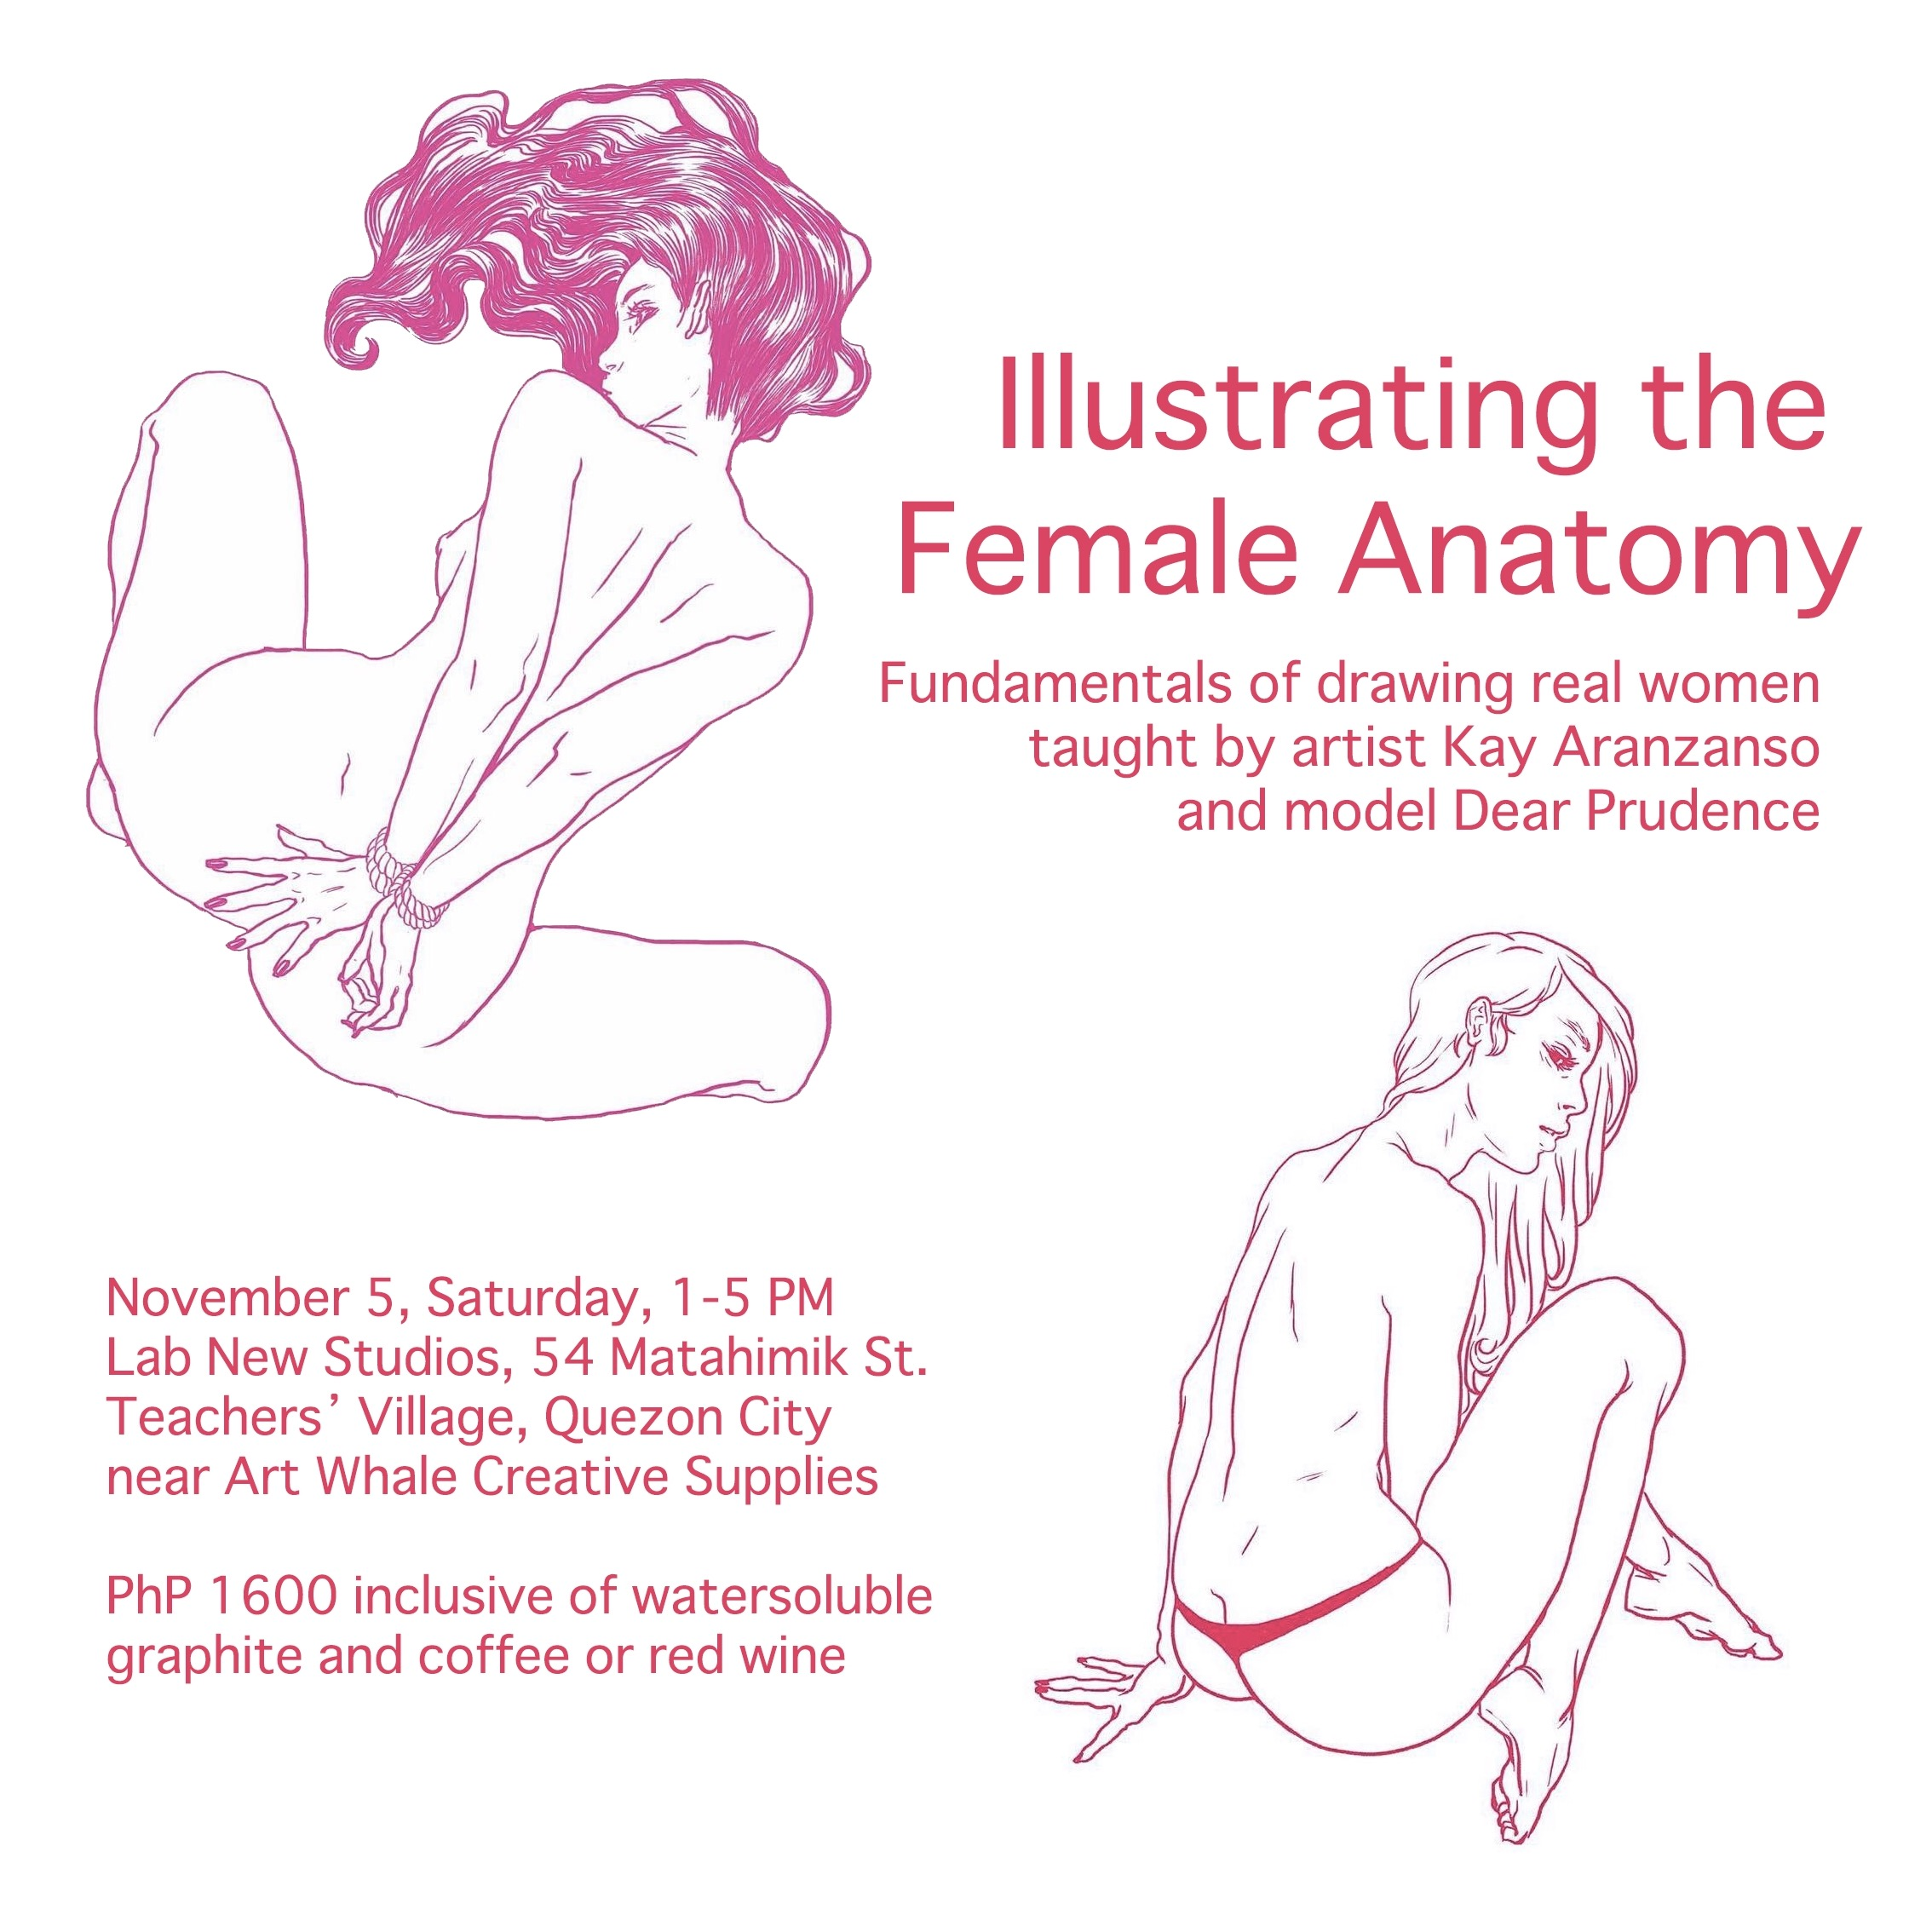 Illustrating the Female Anatomy - November 5, 2016 - ArtWhale.PH